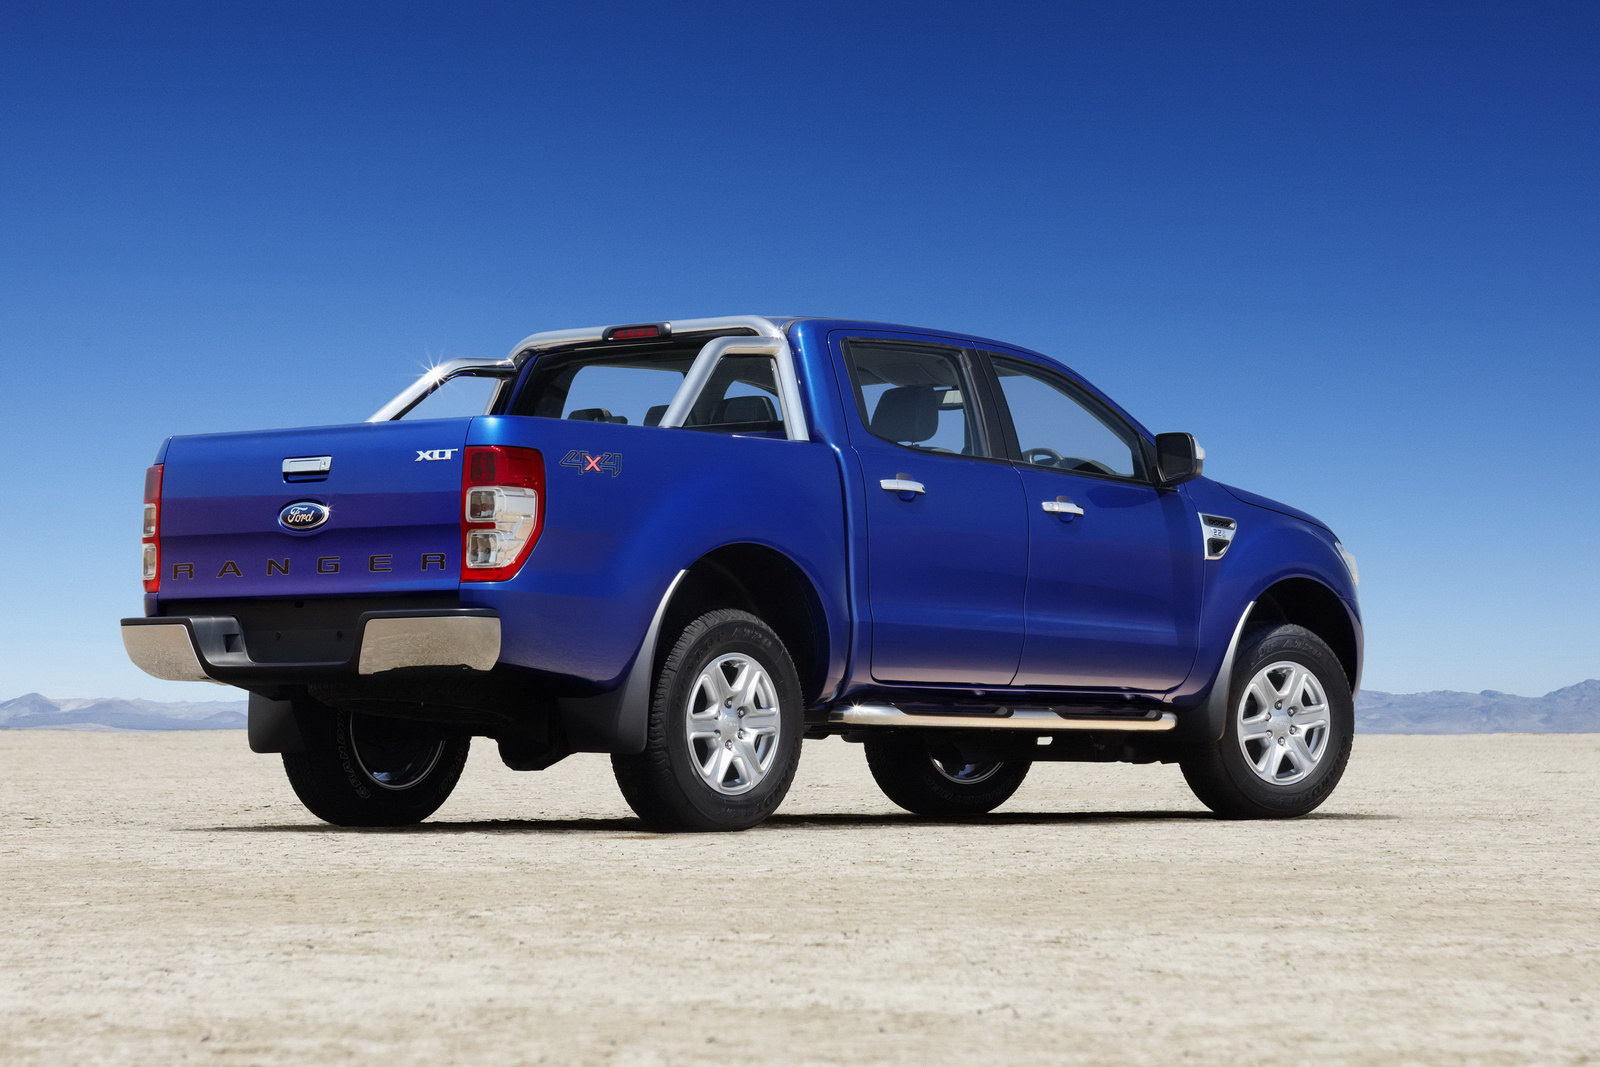 Ford Ranger 2017 Wallpaper >> 2012 Ford Ranger Pickup Truck | CARBLog